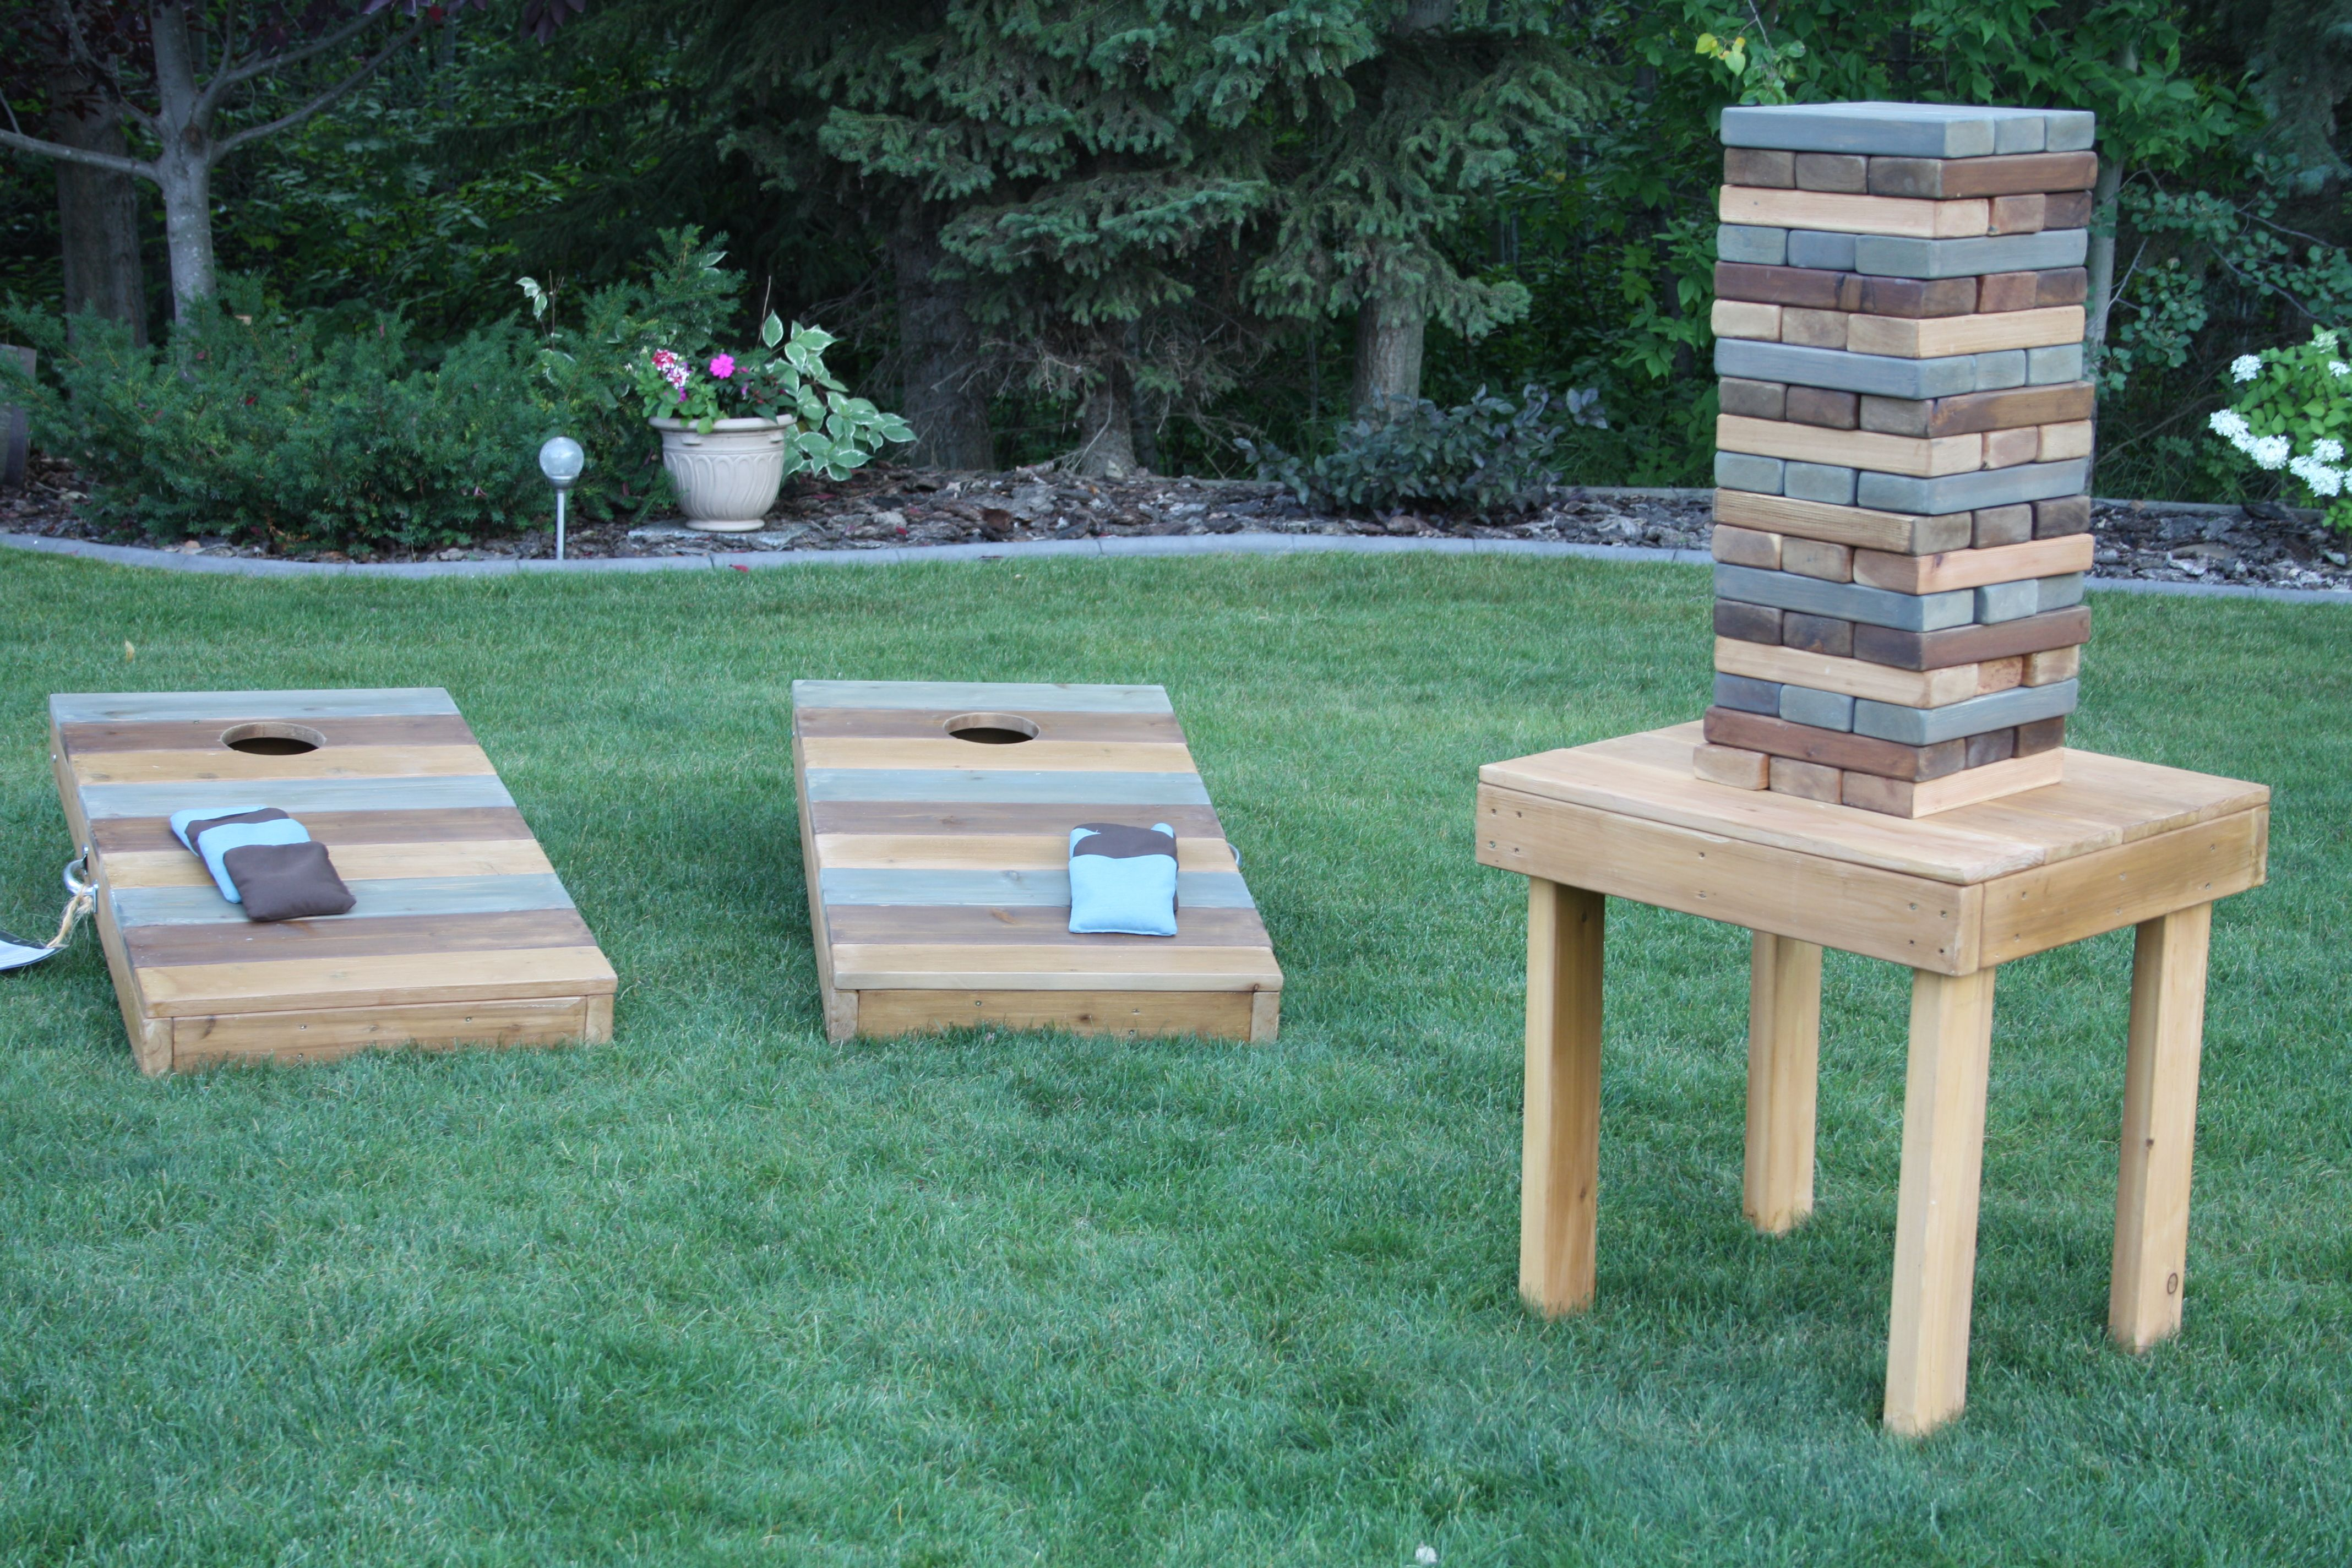 Corn Hole Toss and Giant Jenga available to rent | Diy ...